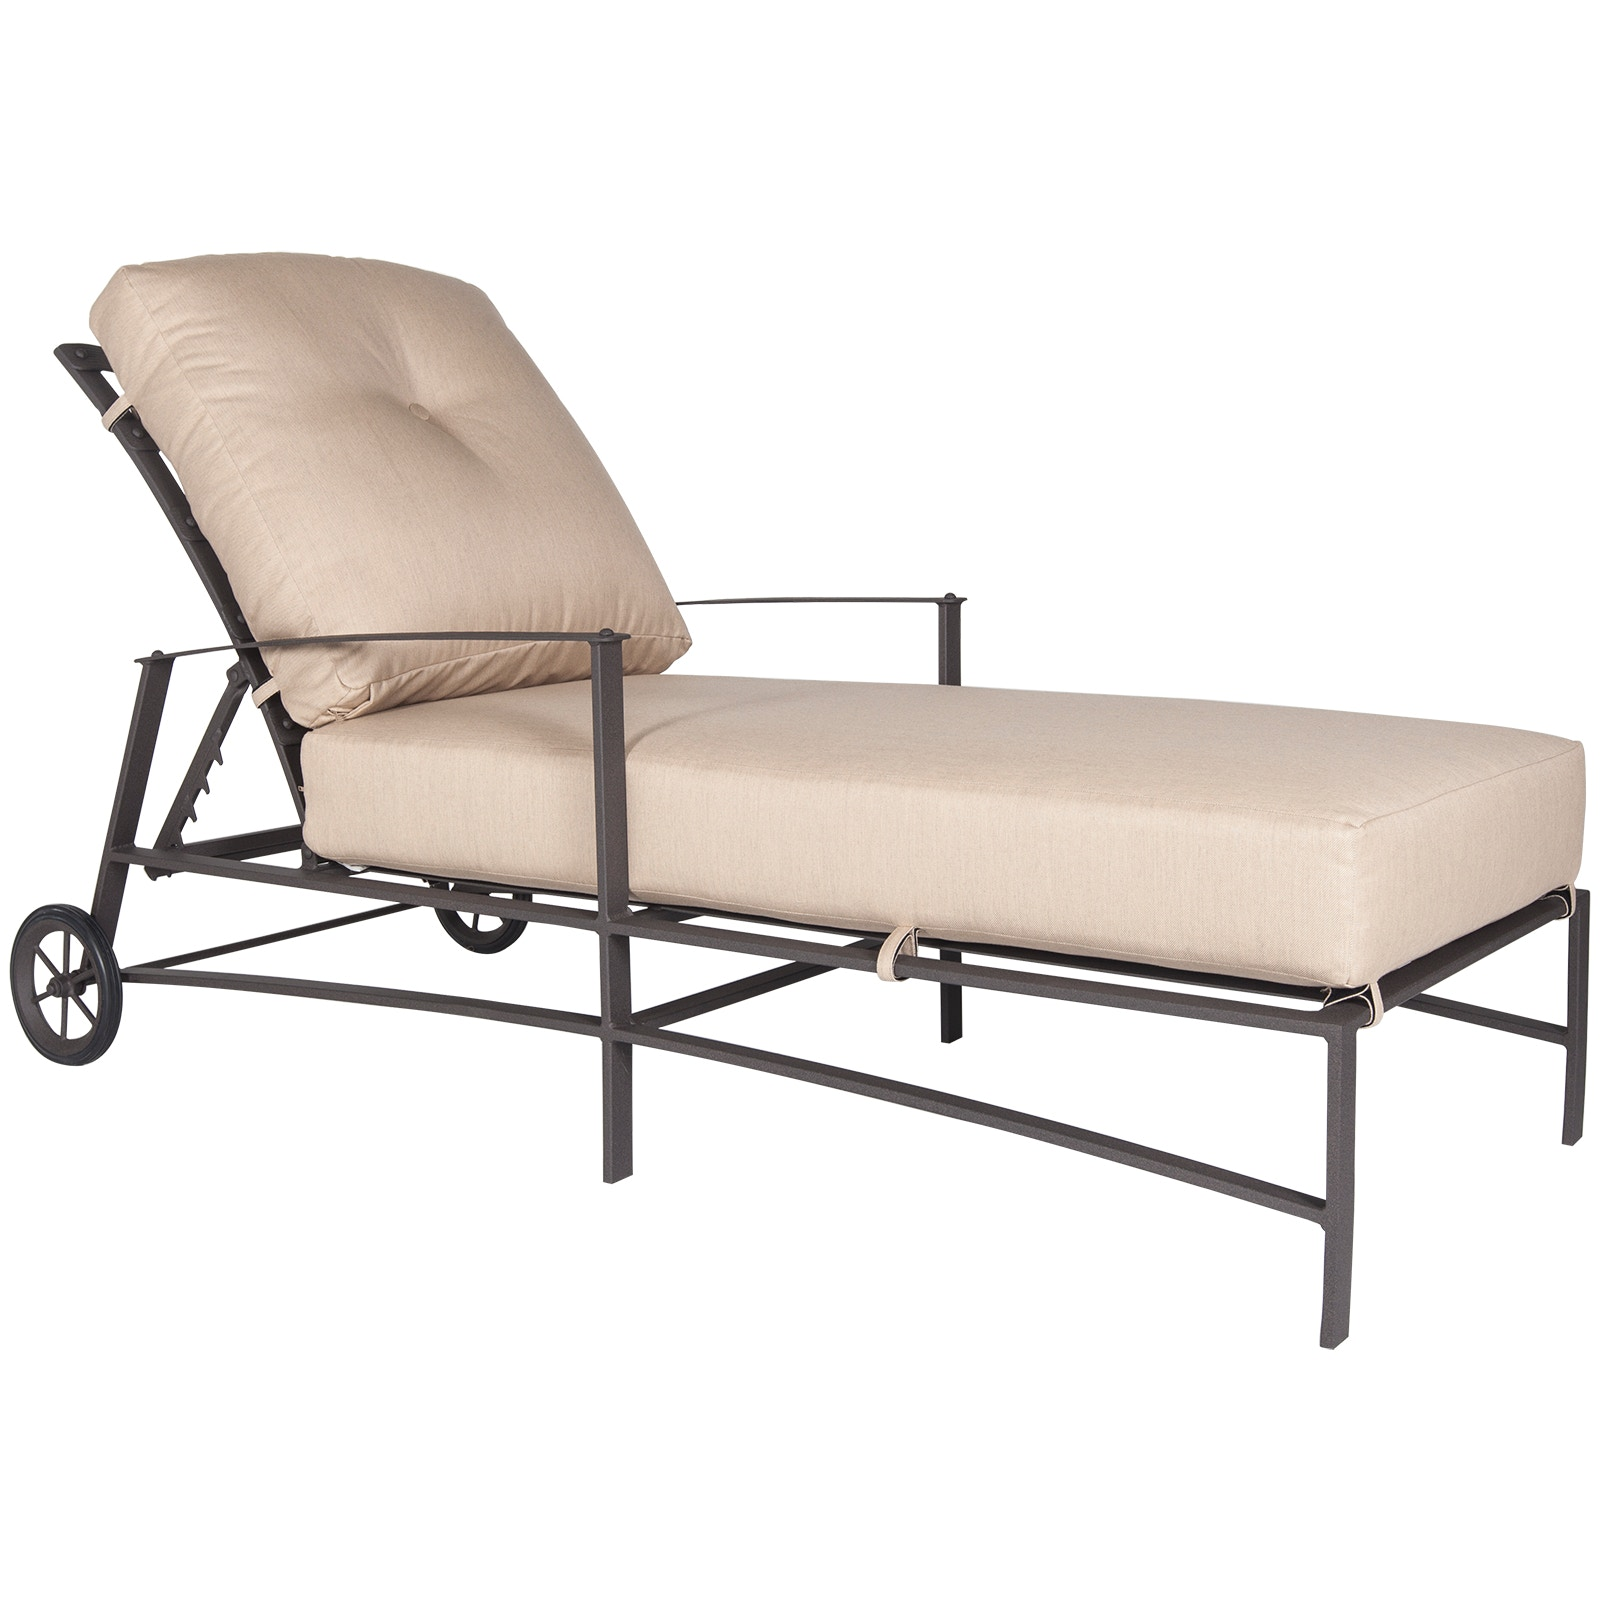 Merveilleux OW Lee Furniture Ridgewood Adjustable Chaise 73128 CH